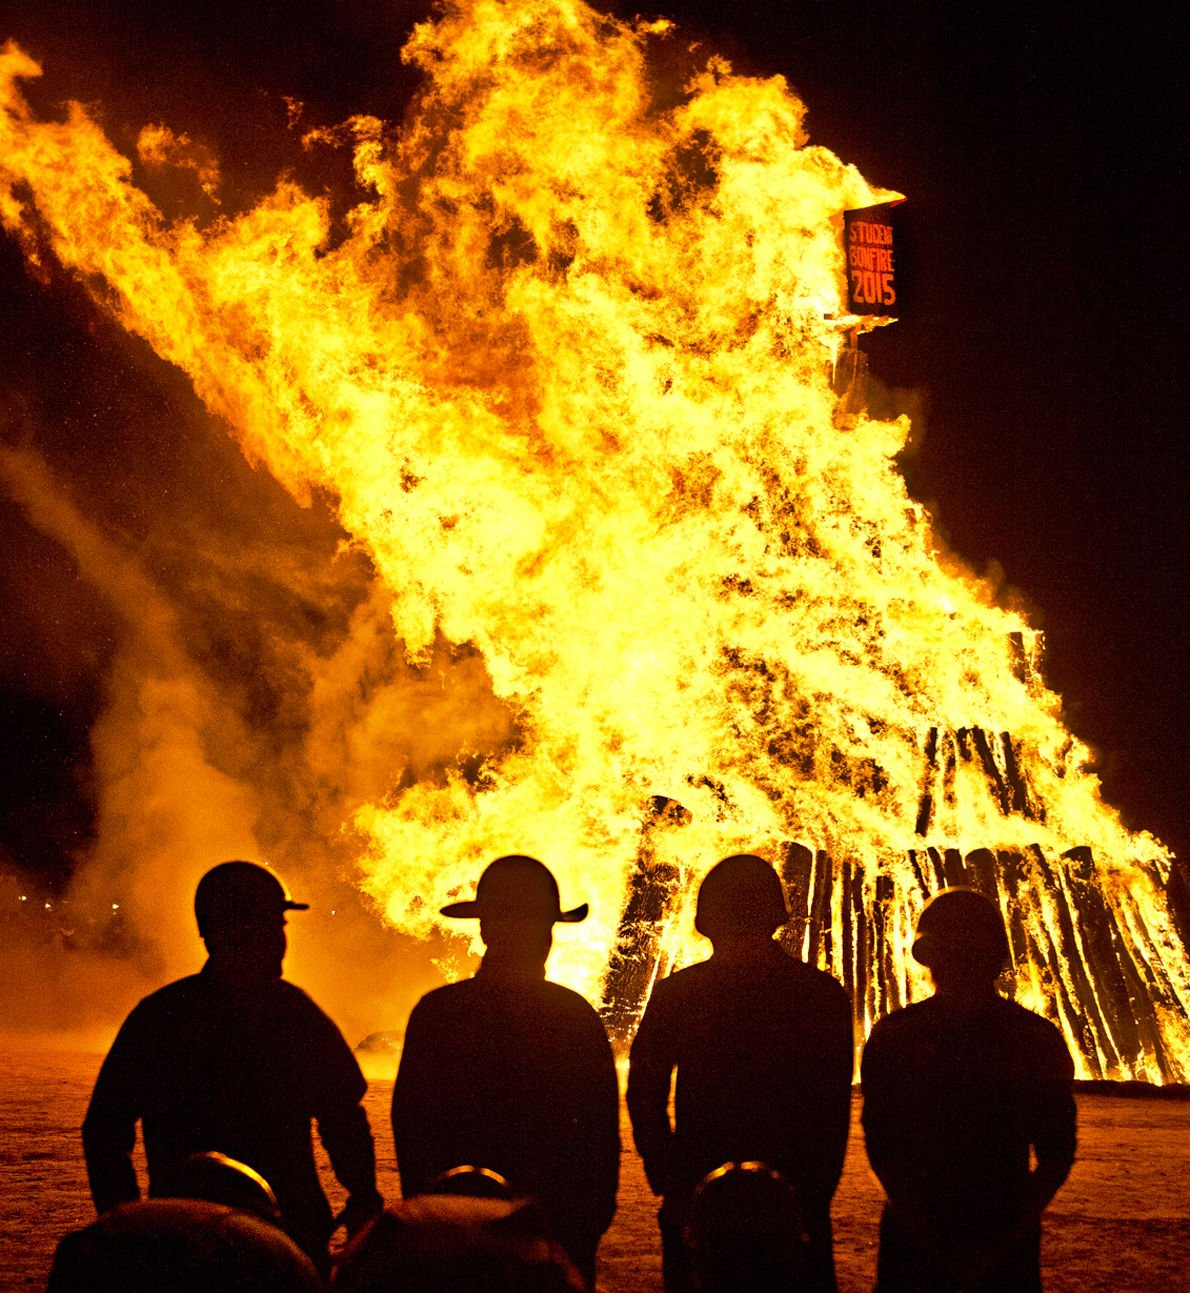 Years after collapse, spirit, community of Student Bonfire remain the same